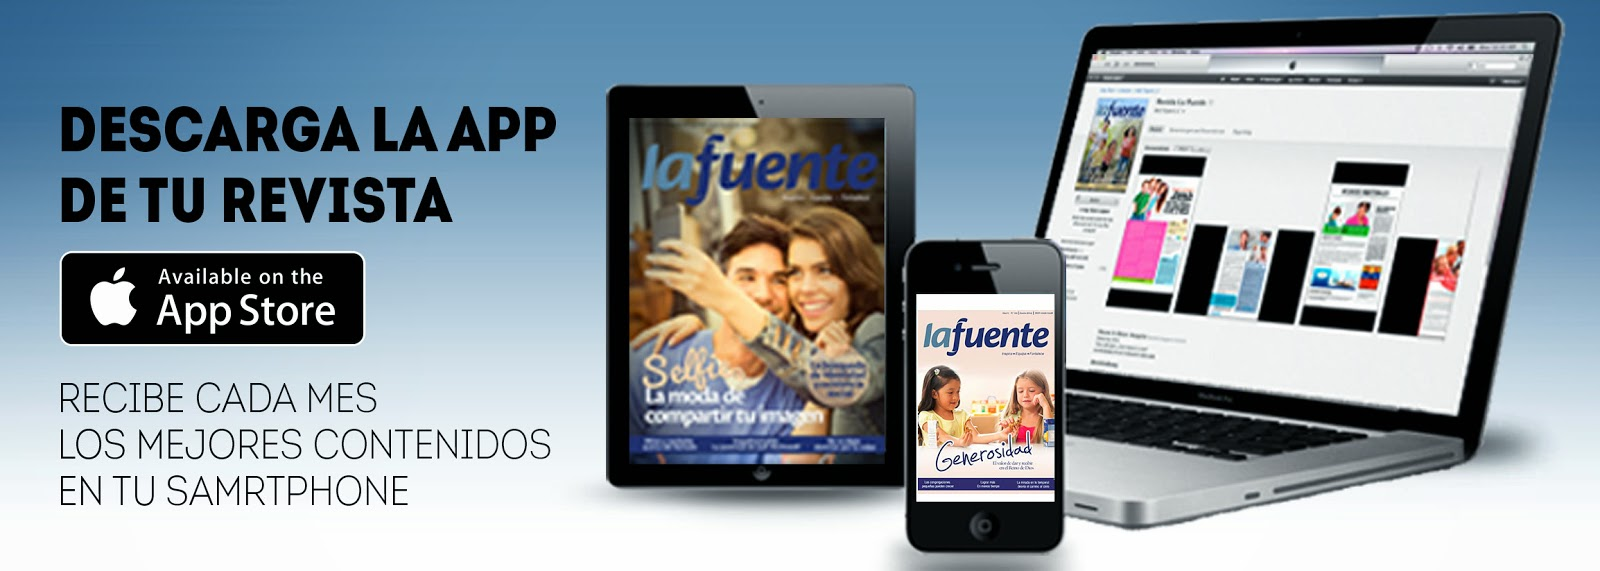 https://search.itunes.apple.com/WebObjects/MZContentLink.woa/wa/link?path=apps%2frevistalafuente